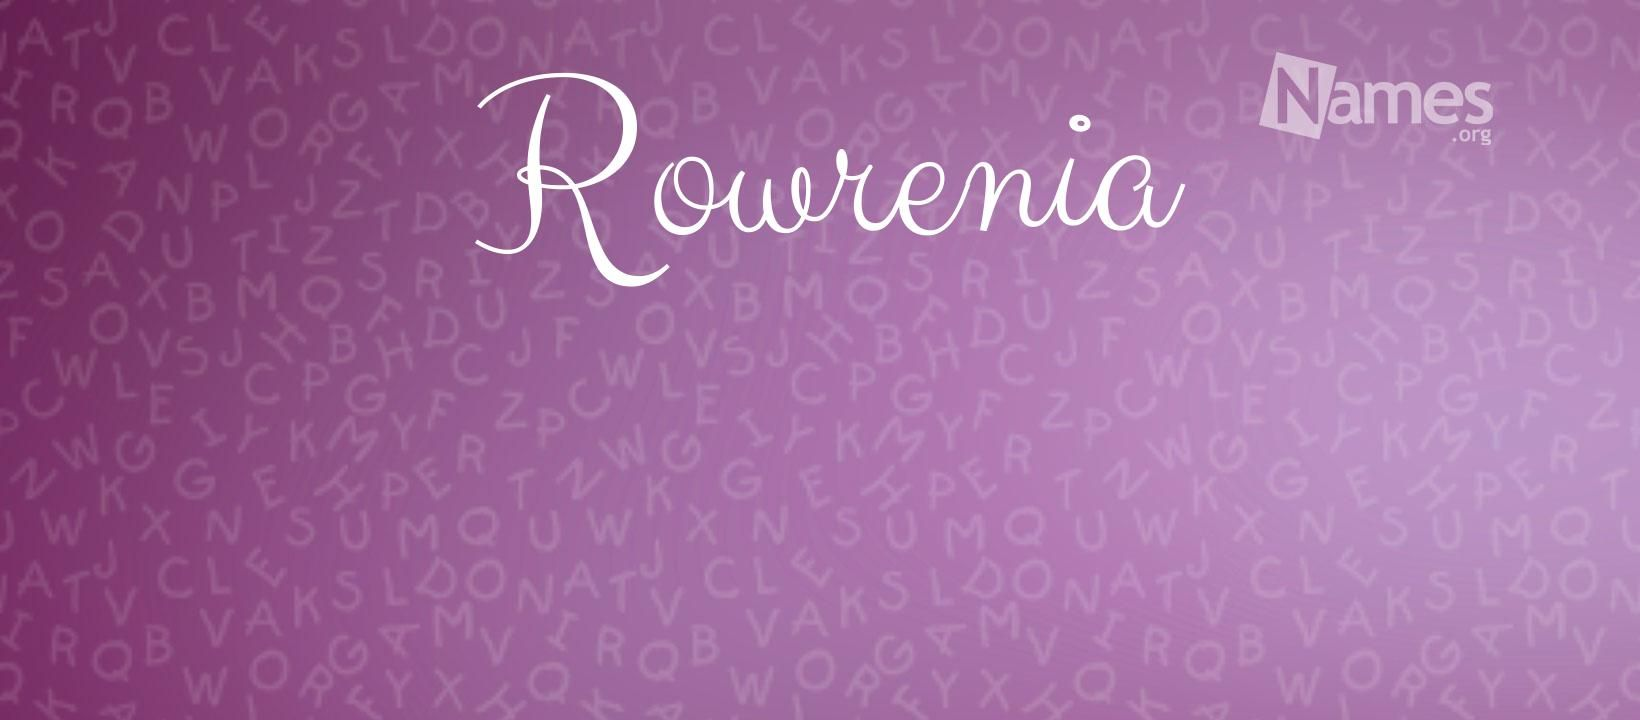 What Does The Name Rowrenia Mean In 2020 Popular Baby Names Popular Baby Girl Names Names